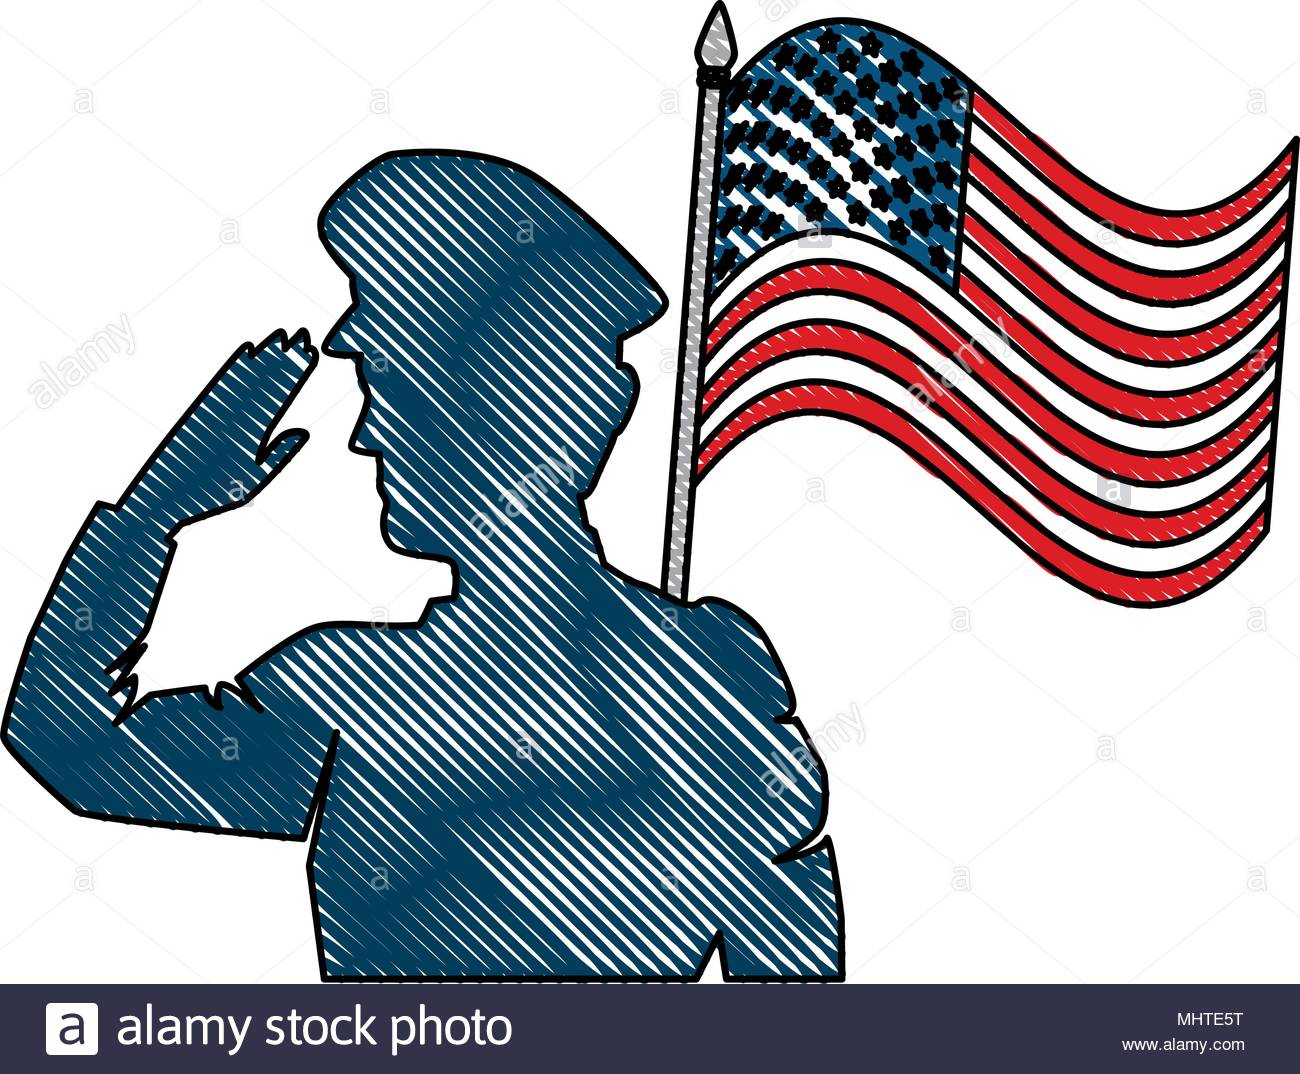 1300x1074 Silhouette Soldier Saluting American Flag Stock Photos